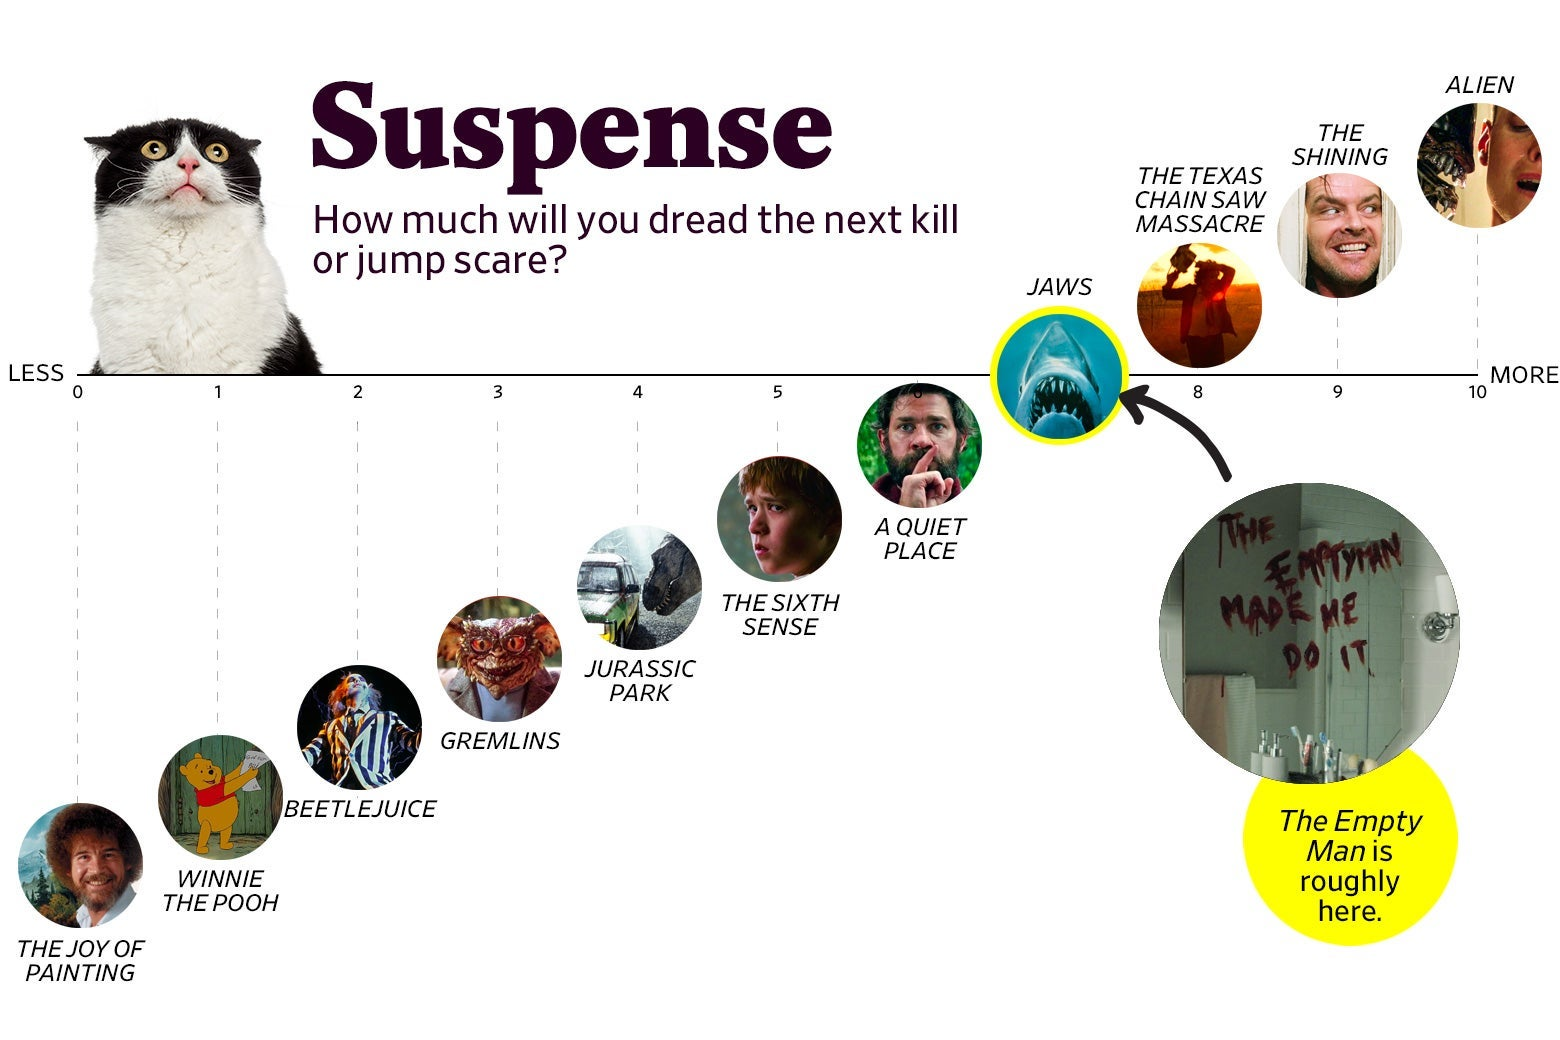 """A chart titled """"Suspense: How much will you dread the next kill or jump scare?"""" shows that The Empty Man ranks a 7 in suspense, roughly the same as Jaws. The scale ranges from The Joy of Painting (0) to Alien (10)."""